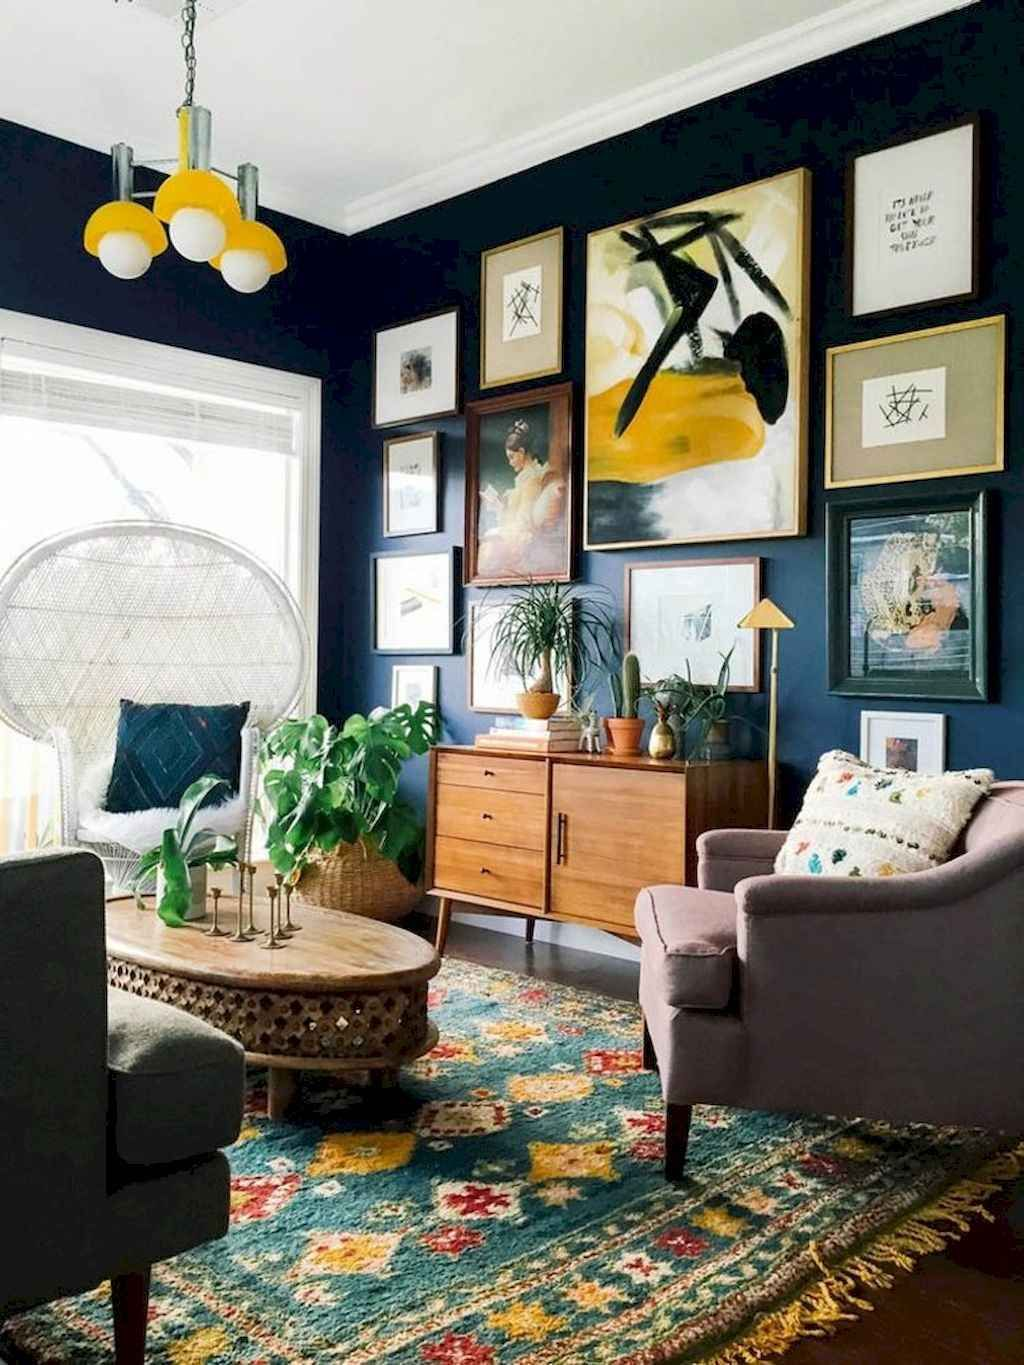 60 Amazing Eclectic Style Living Room Design Idea